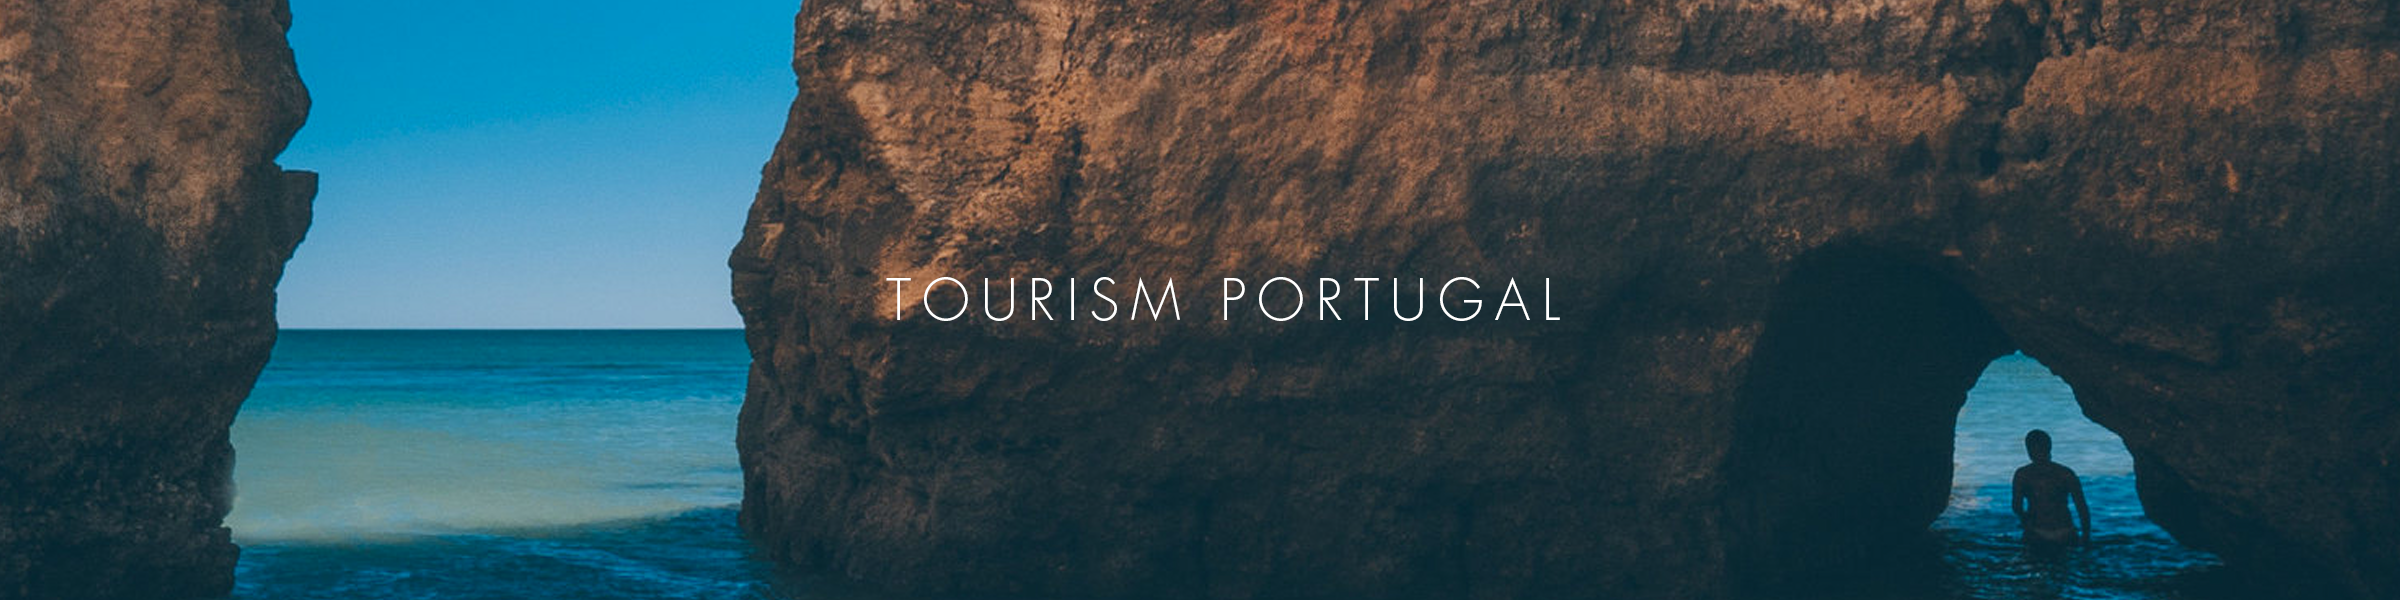 TOURISMPORTUGAL.png